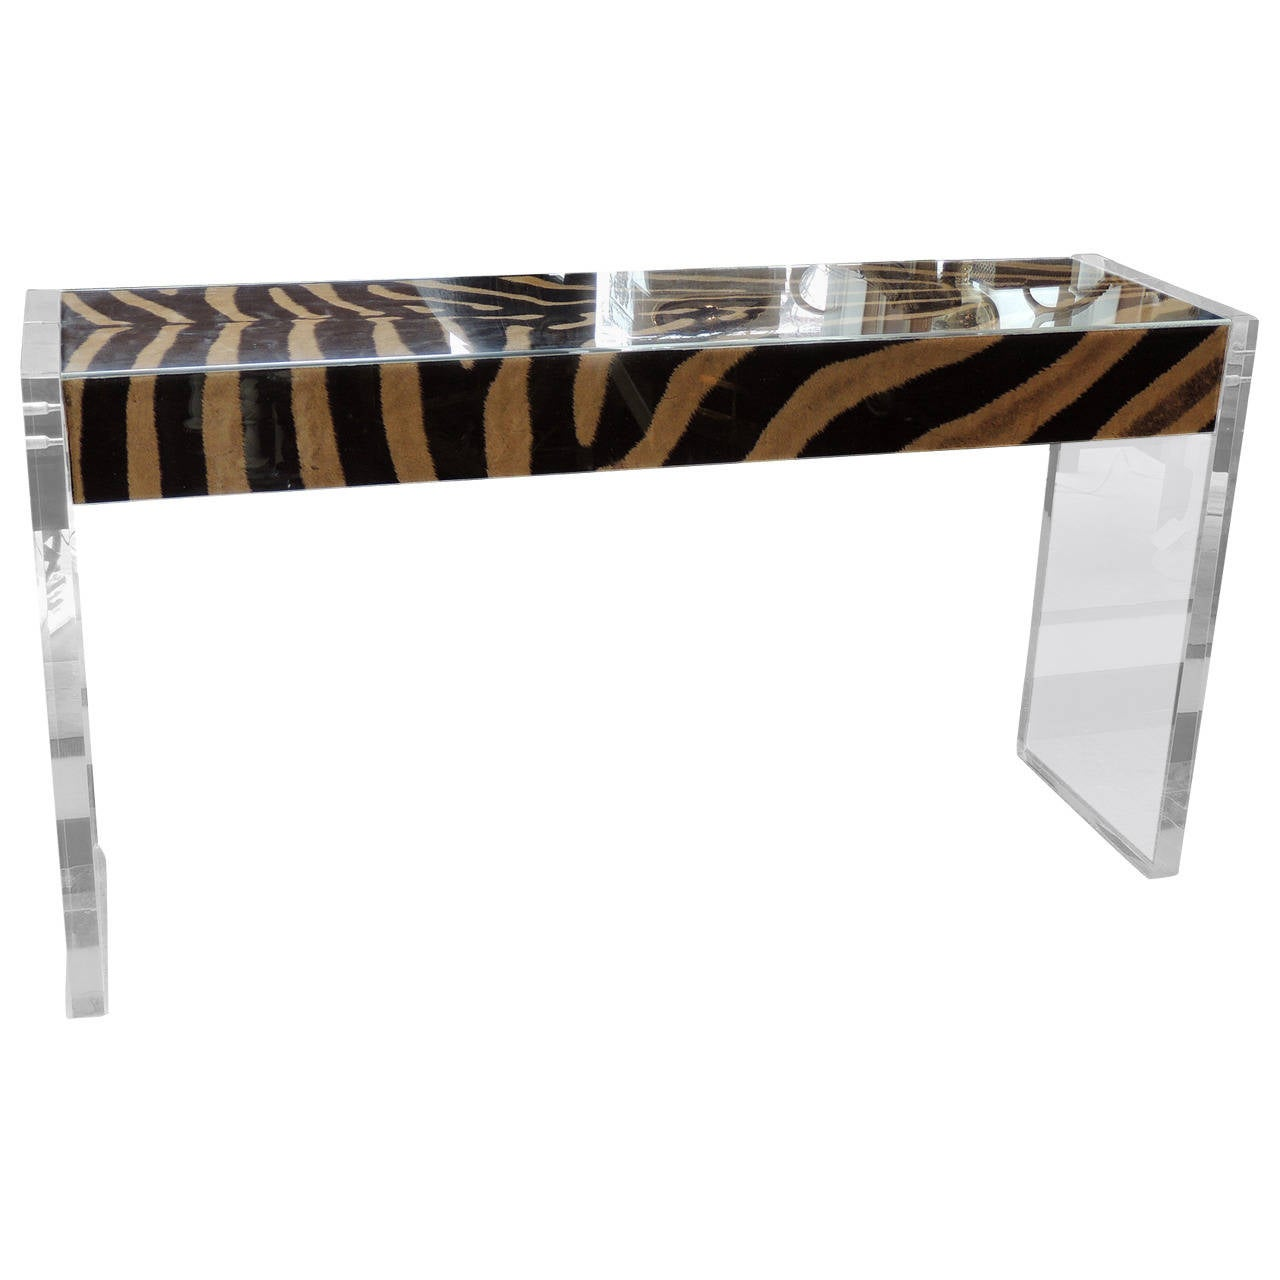 Lucite Console Table With Zebra Hide At 1stdibs